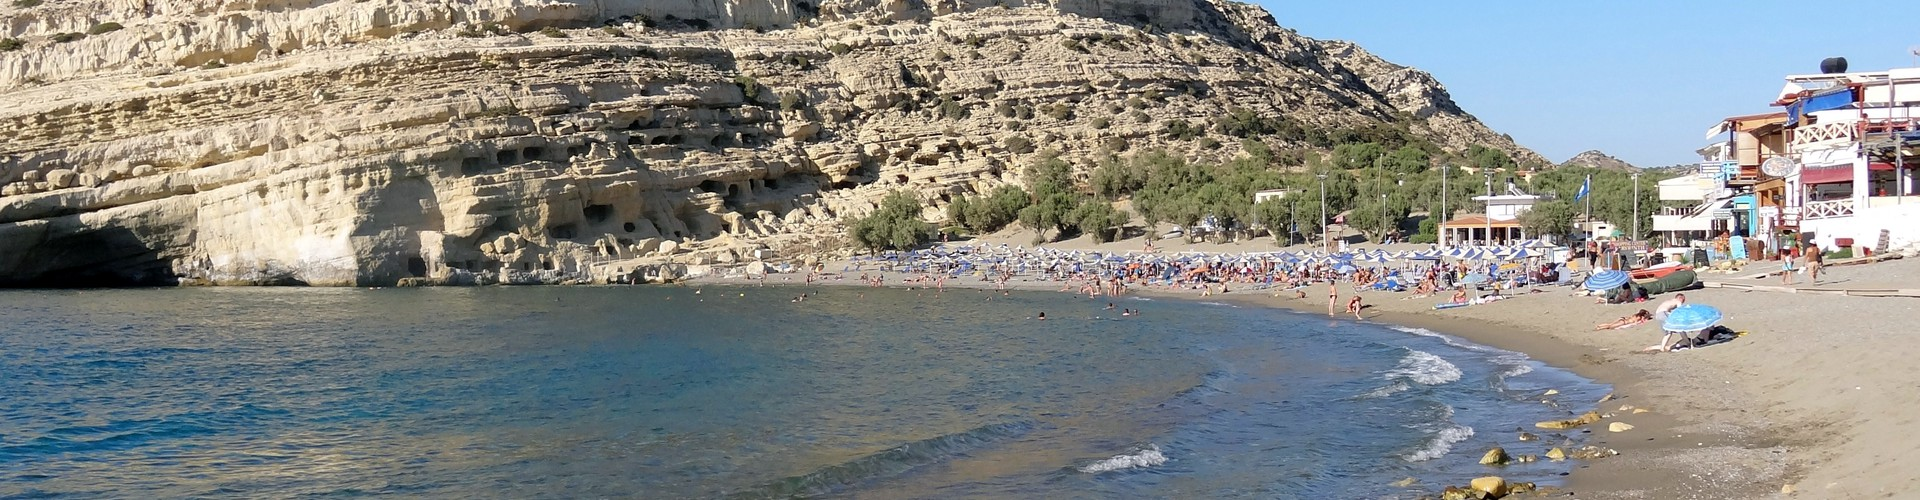 Beaches in southern Crete could be affected by an Eastern Mediterranean tsunami (Credit: Olaf Tausch)